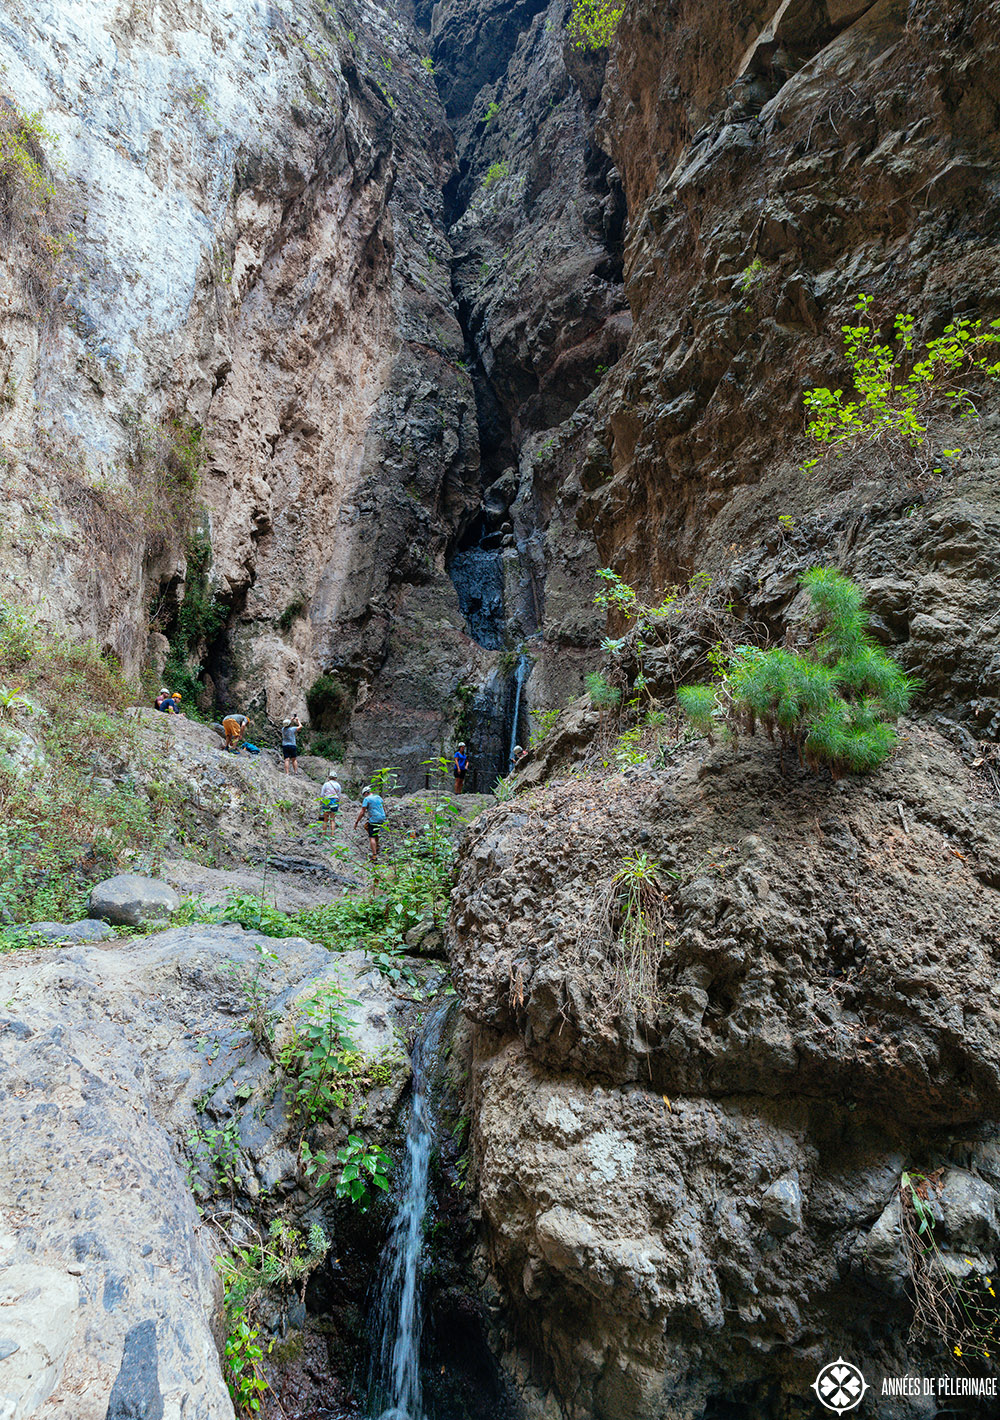 The waterfall at the end of the barranco del infierno on tenerife, canary islands